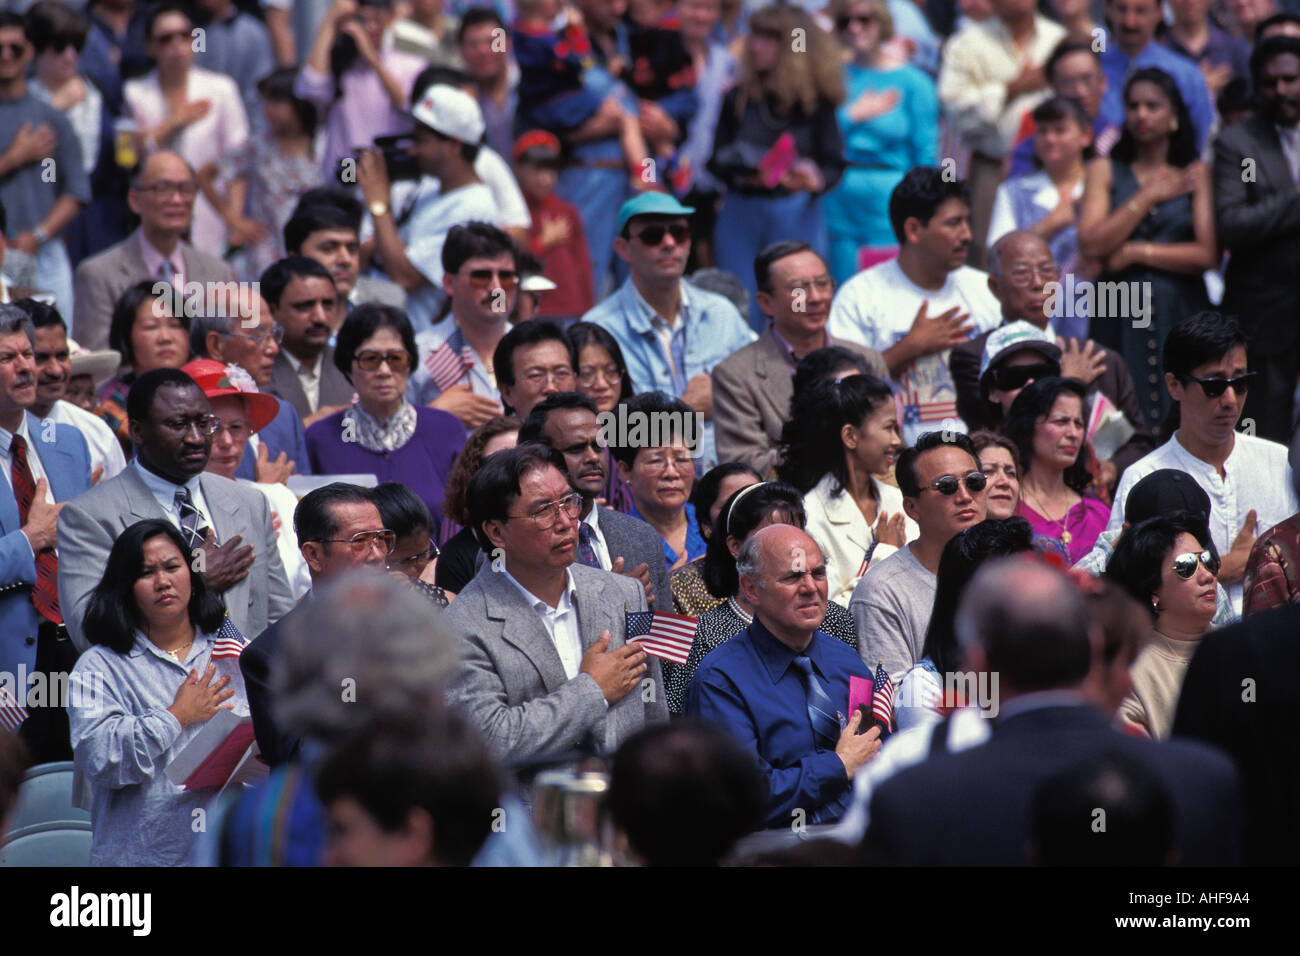 Crowd Of Immigrants Repeat Pledge Of Allegiance During 4th Of July U S Naturalization Ceremony Seattle Washington - Stock Image